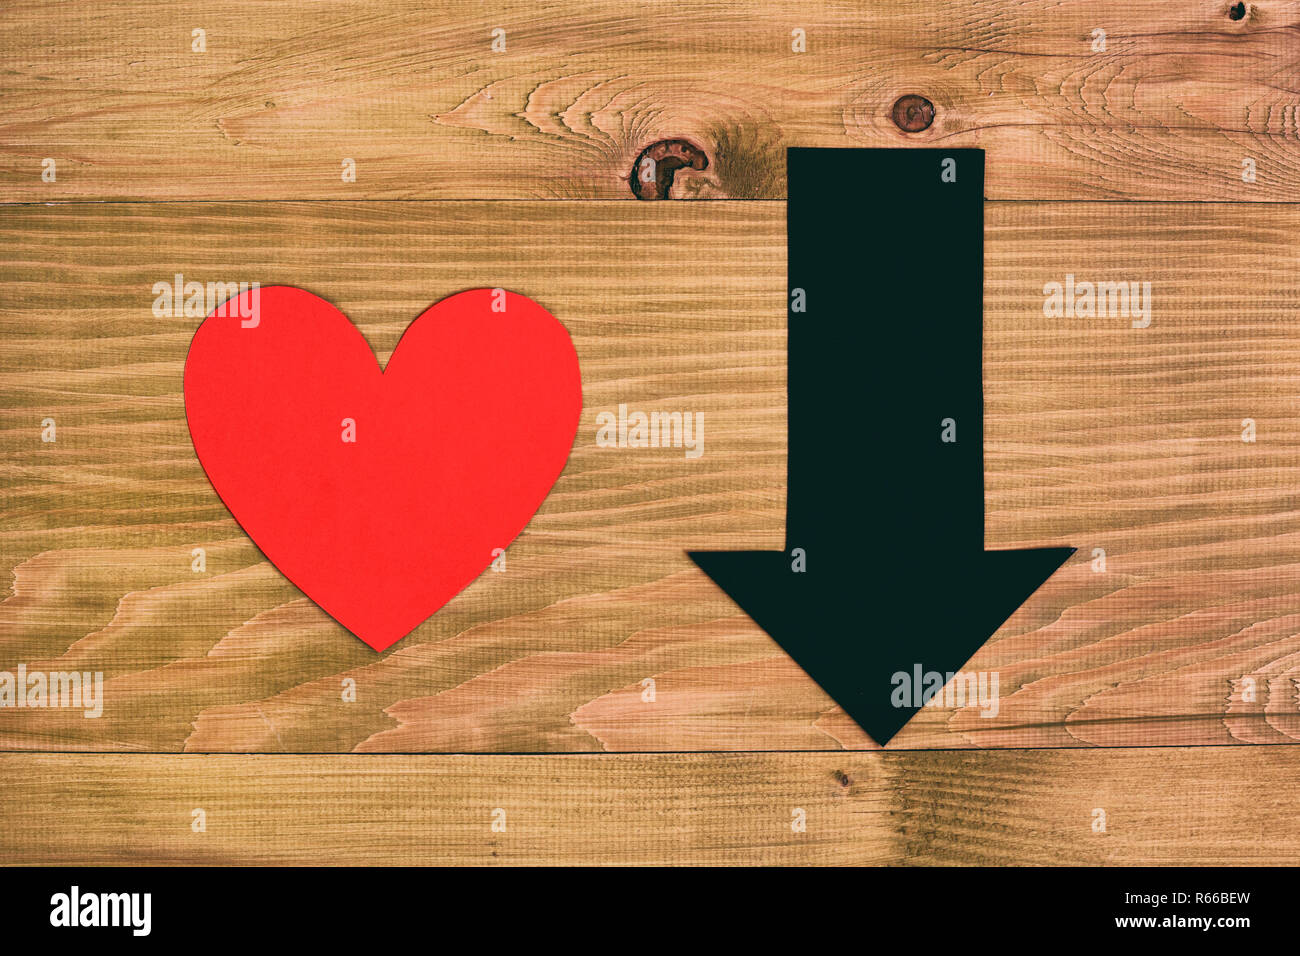 Red heart and arrow going down on wooden table,relationship breakup concept. - Stock Image